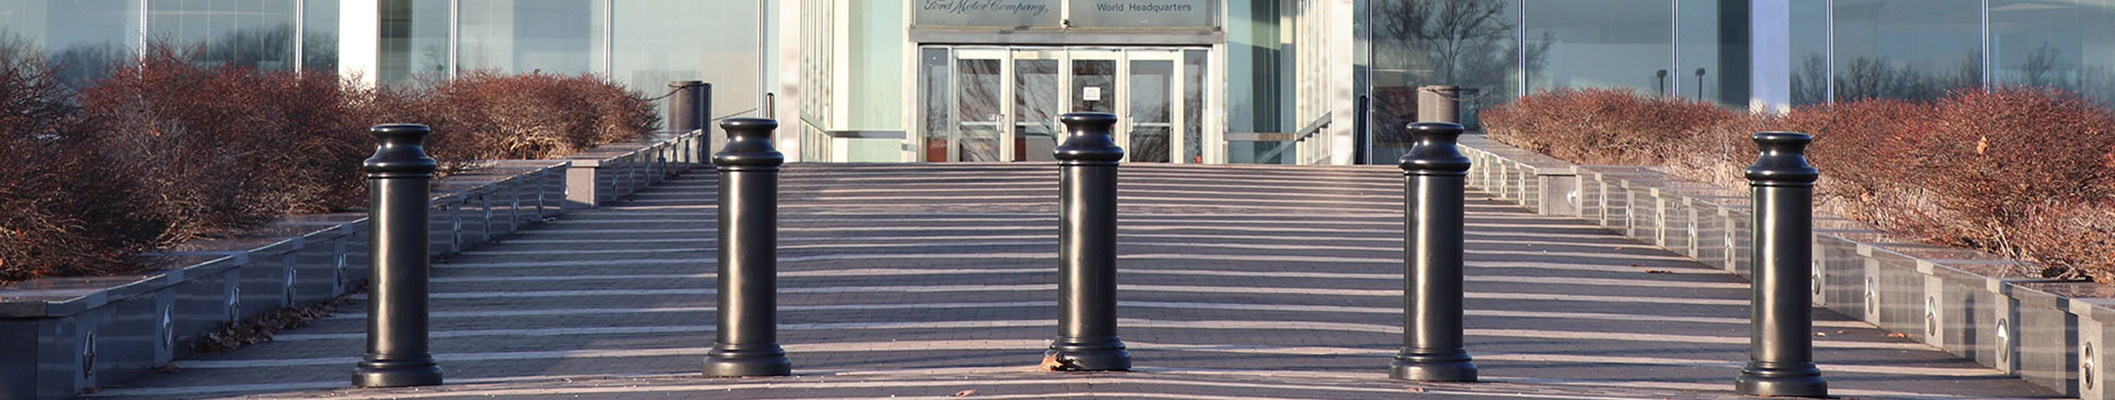 "10"" Pawn Decorative Bollard Covers"